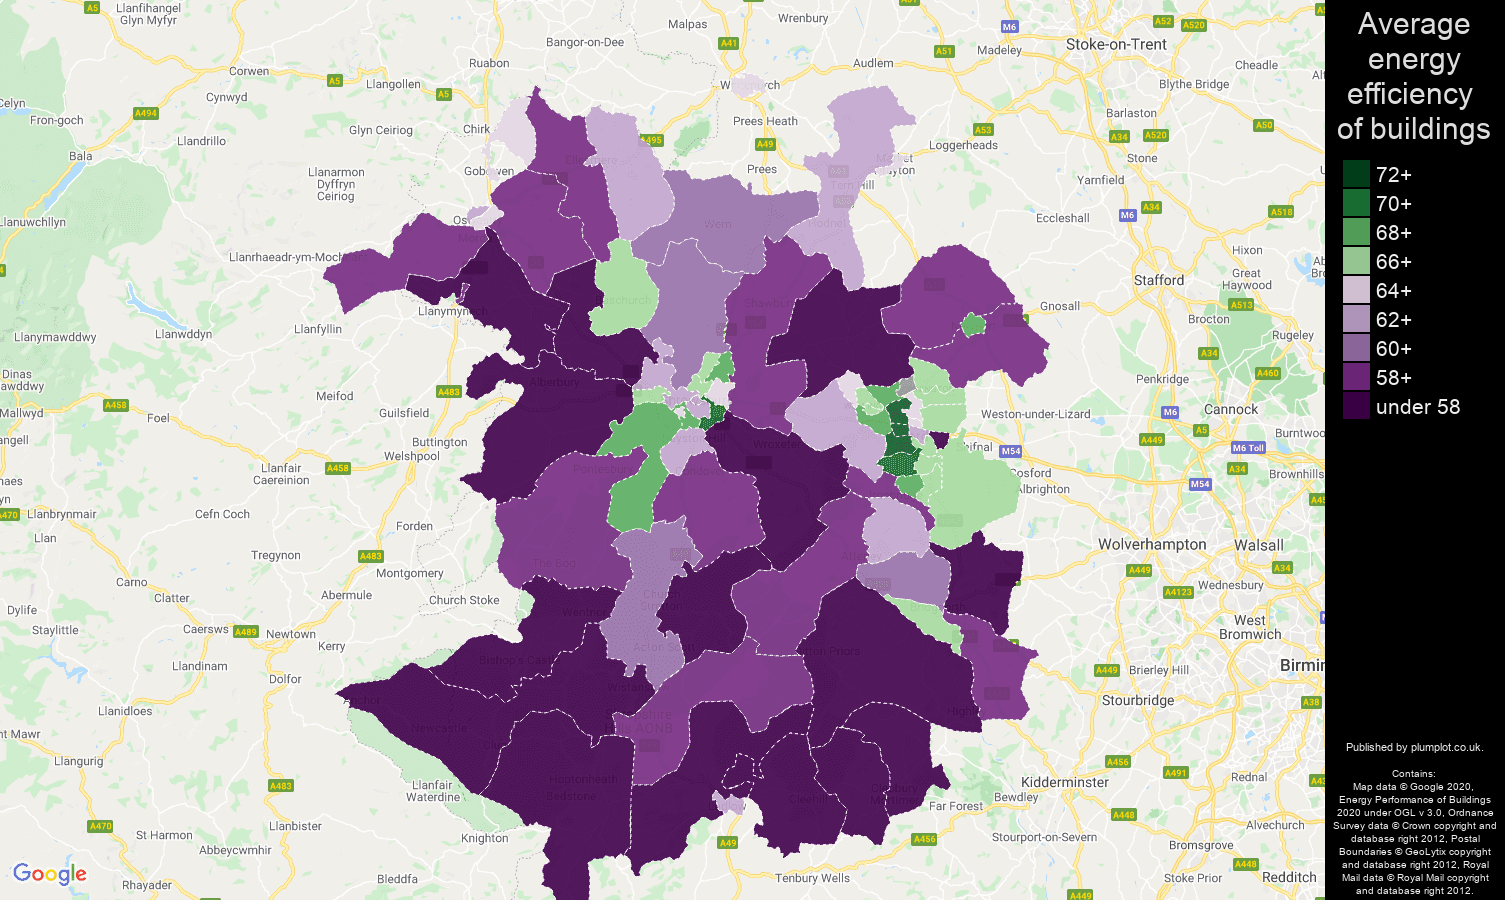 Shropshire map of energy efficiency of properties